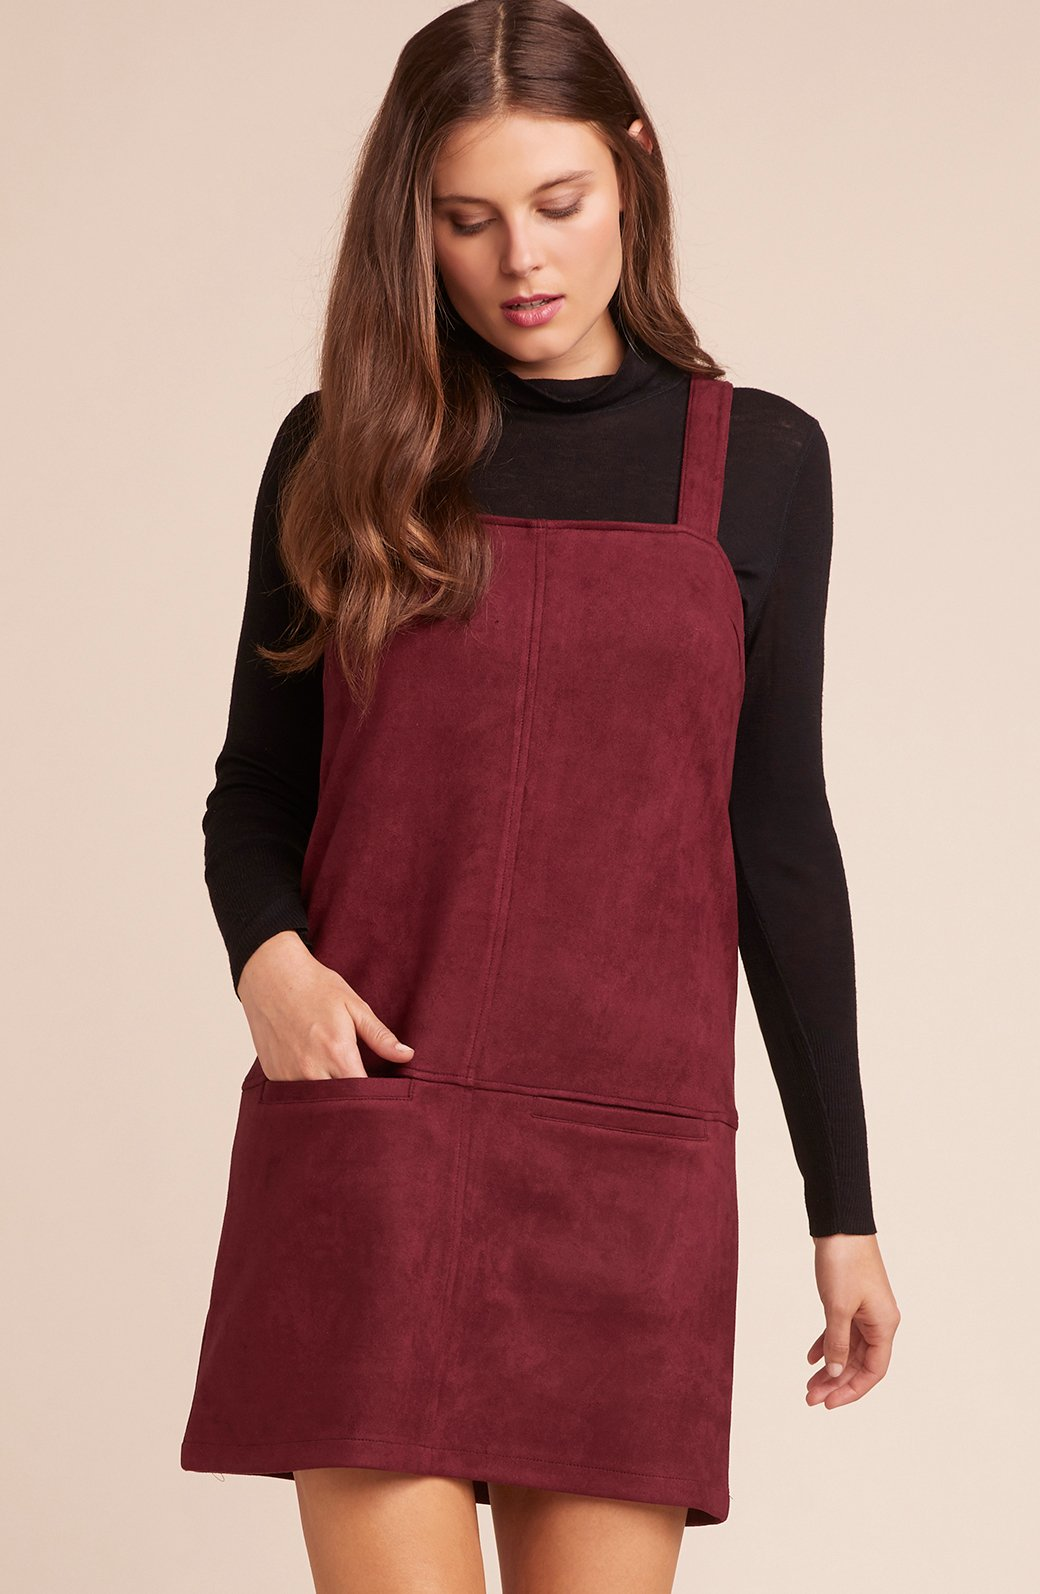 Vegan Suede Dress in Cranberry